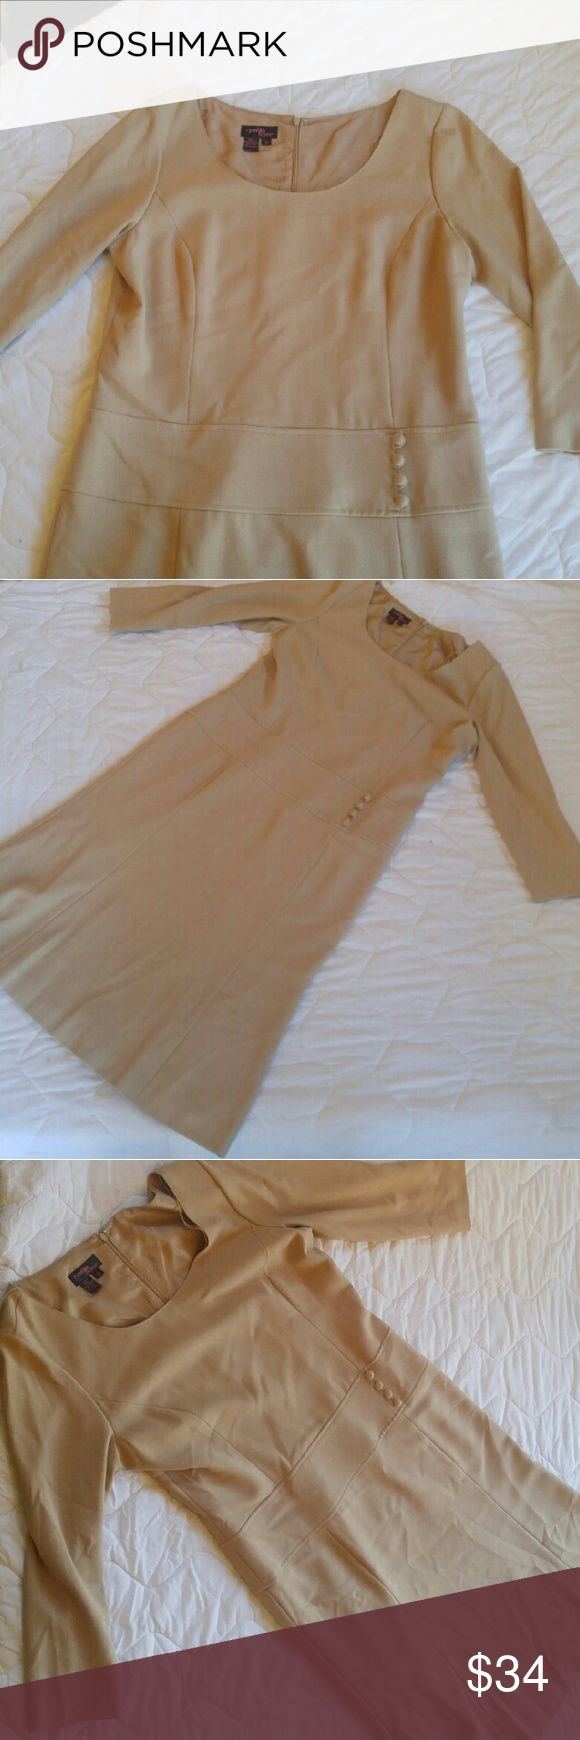 Tan dress Beige/tan 3/4 sleeve dress. Tailored with a dropwaist. Scoopneck and below the knee length. Cynthia Howie Dresses Midi